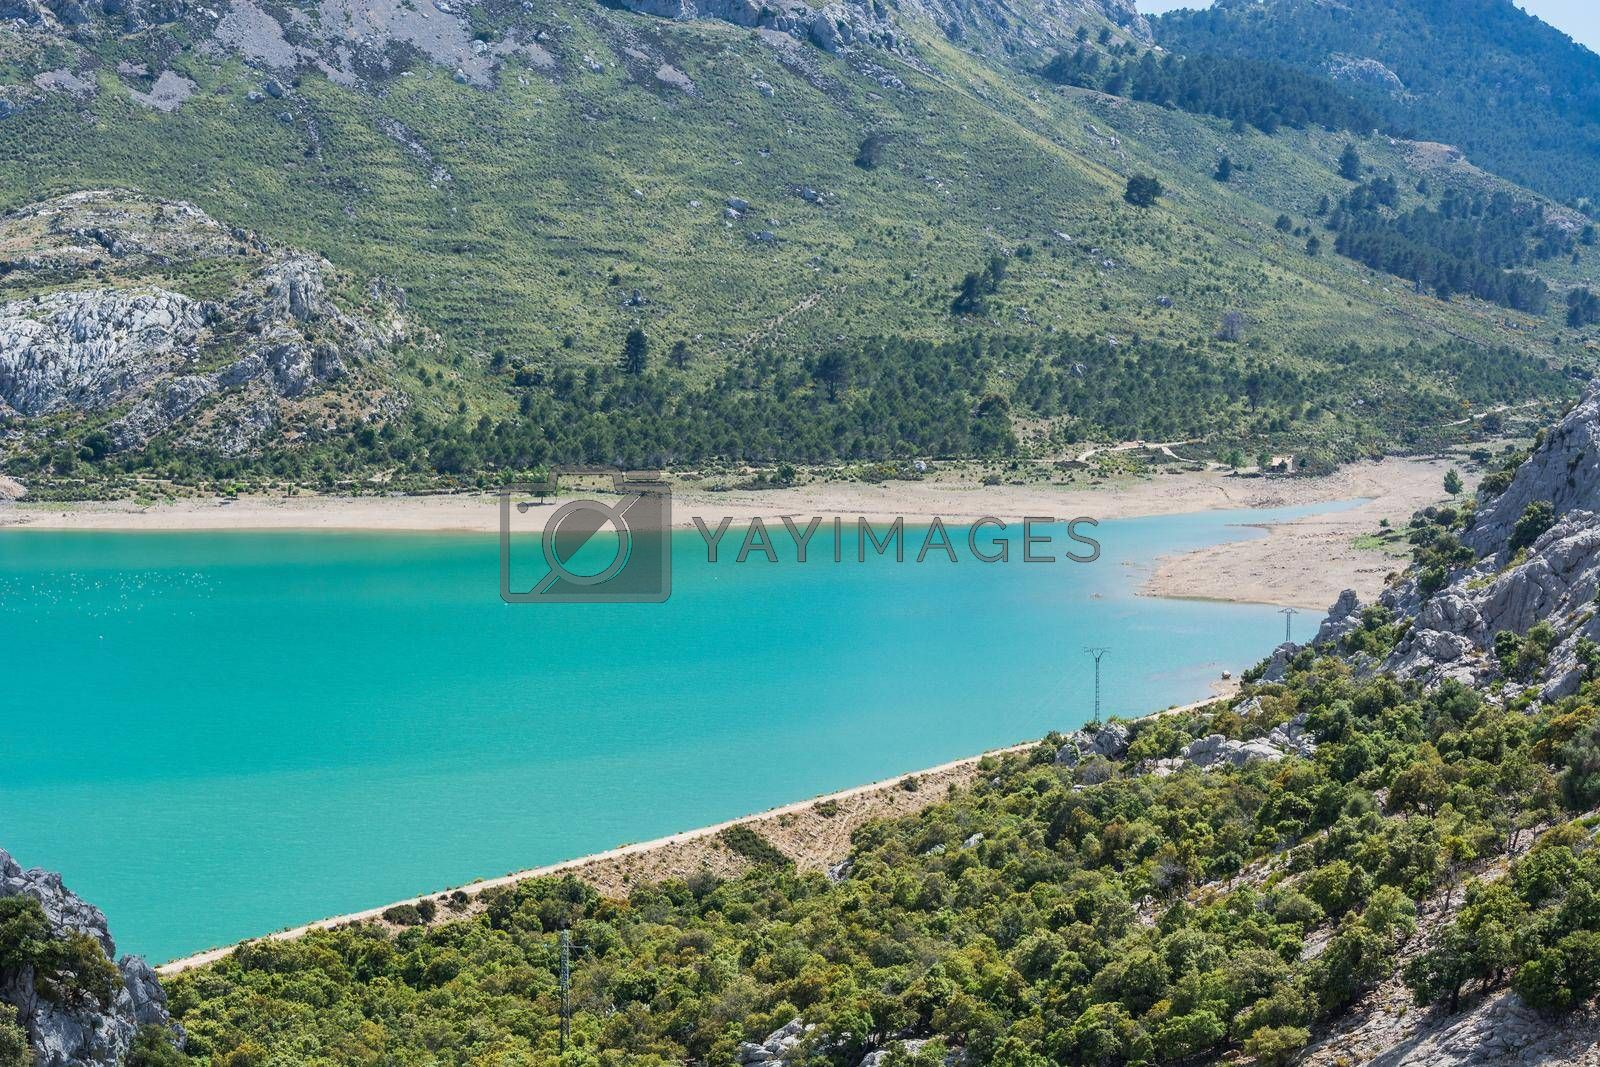 Royalty free image of Fantastic views of the Embalse de Cuber                by JFsPic